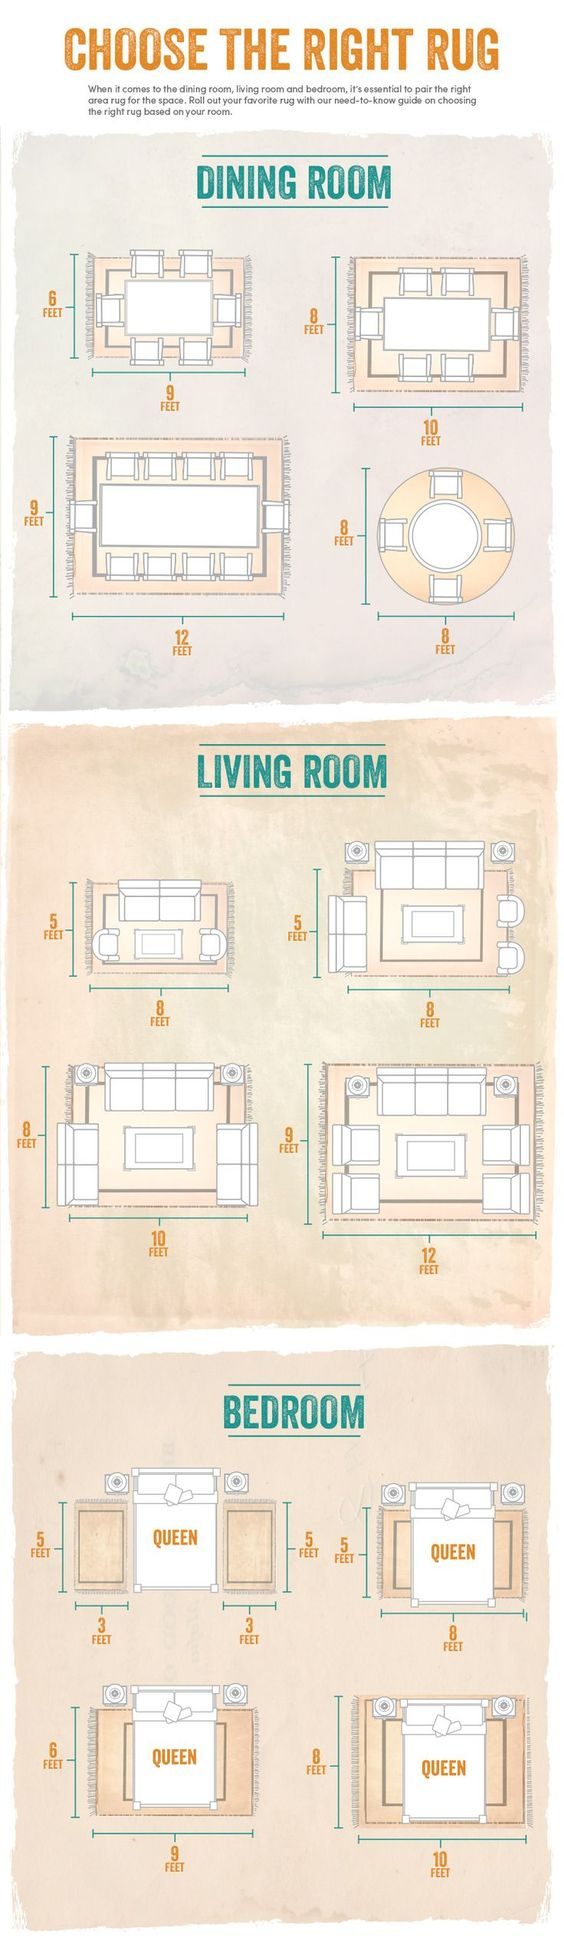 Rug placement rugs and rug size on pinterest for Area rug size guide